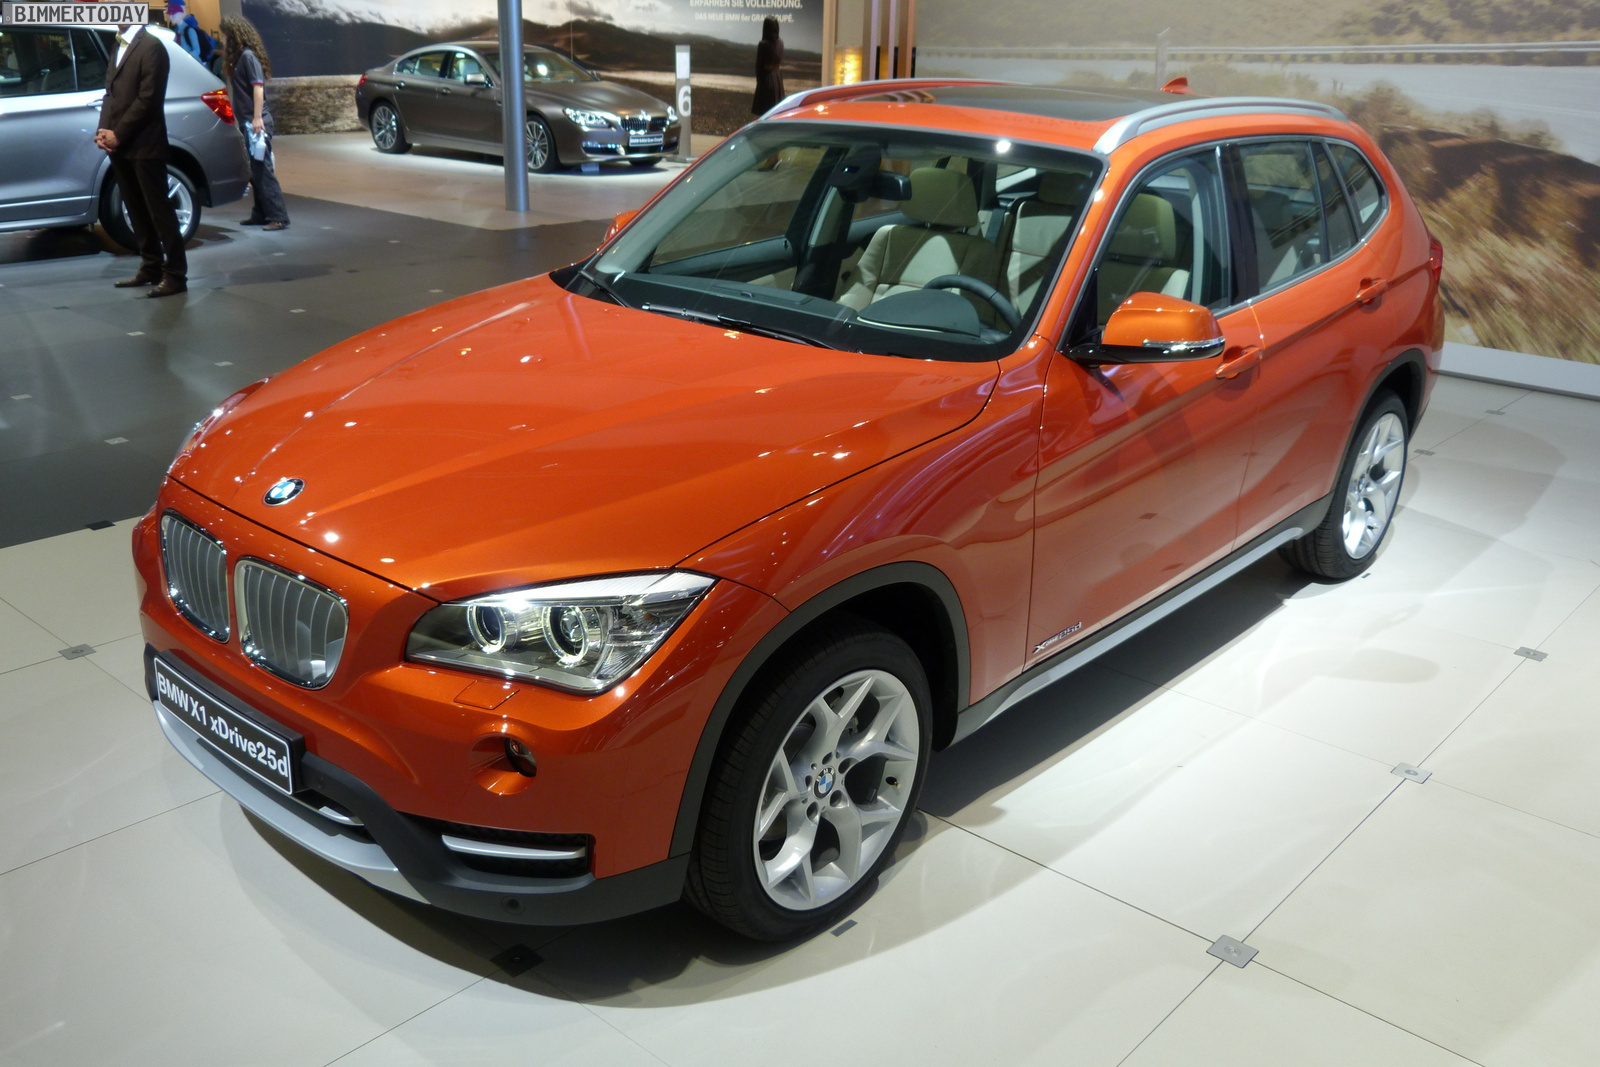 2012 Leipzig Auto Show Bmw X1 Facelift In Valencia Orange